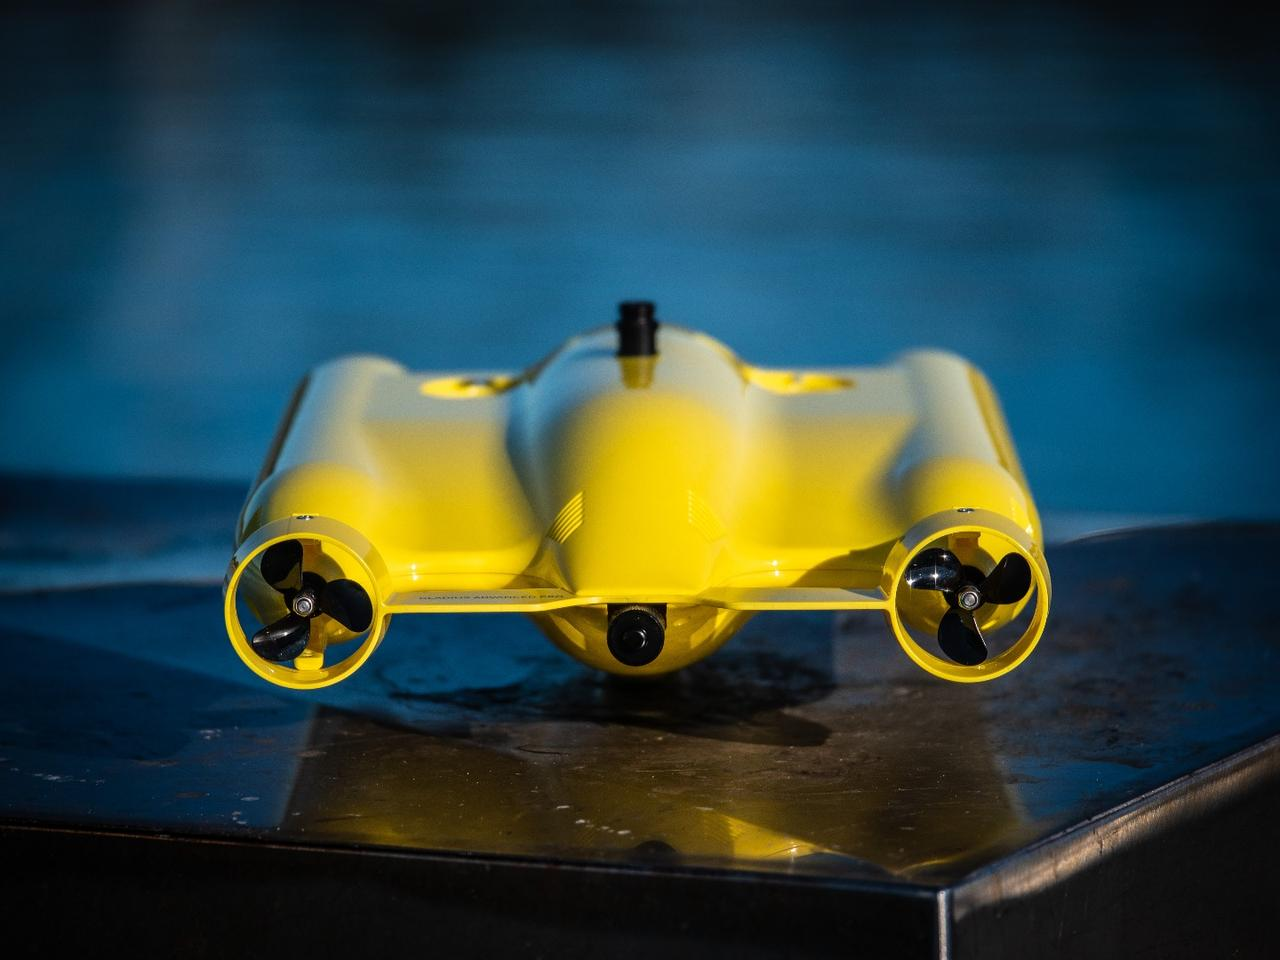 Review: Gladius Advanced Pro underwater drone turns the